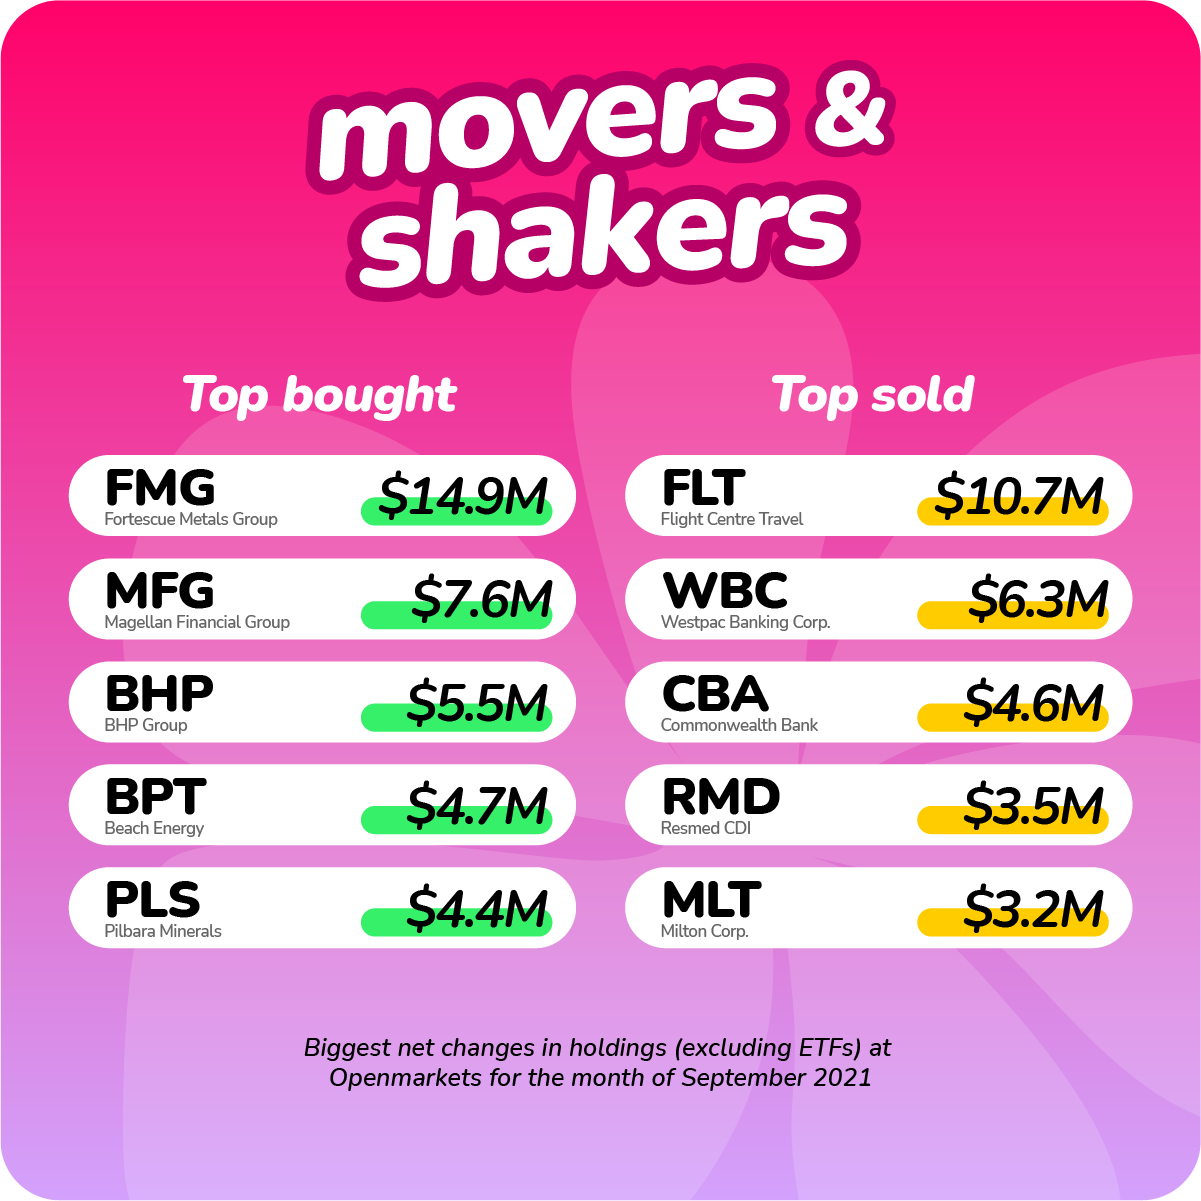 Movers and shakers September 2021